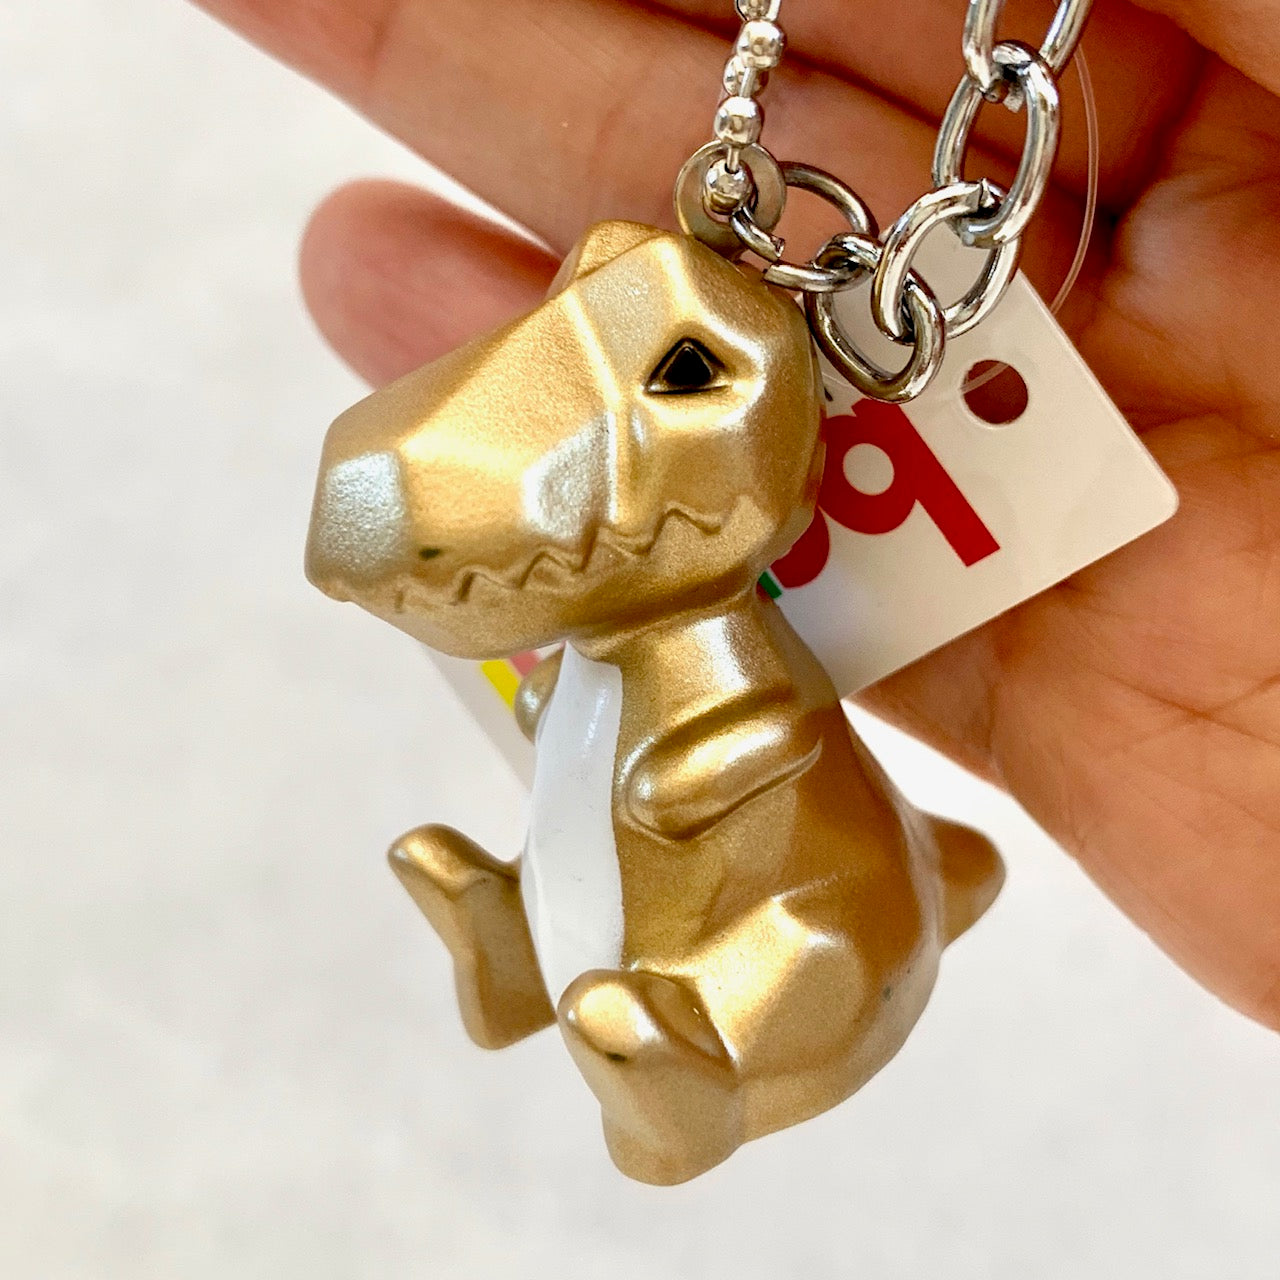 12037 GEOMETRIC DINOSAUR CHARM with keyring-12